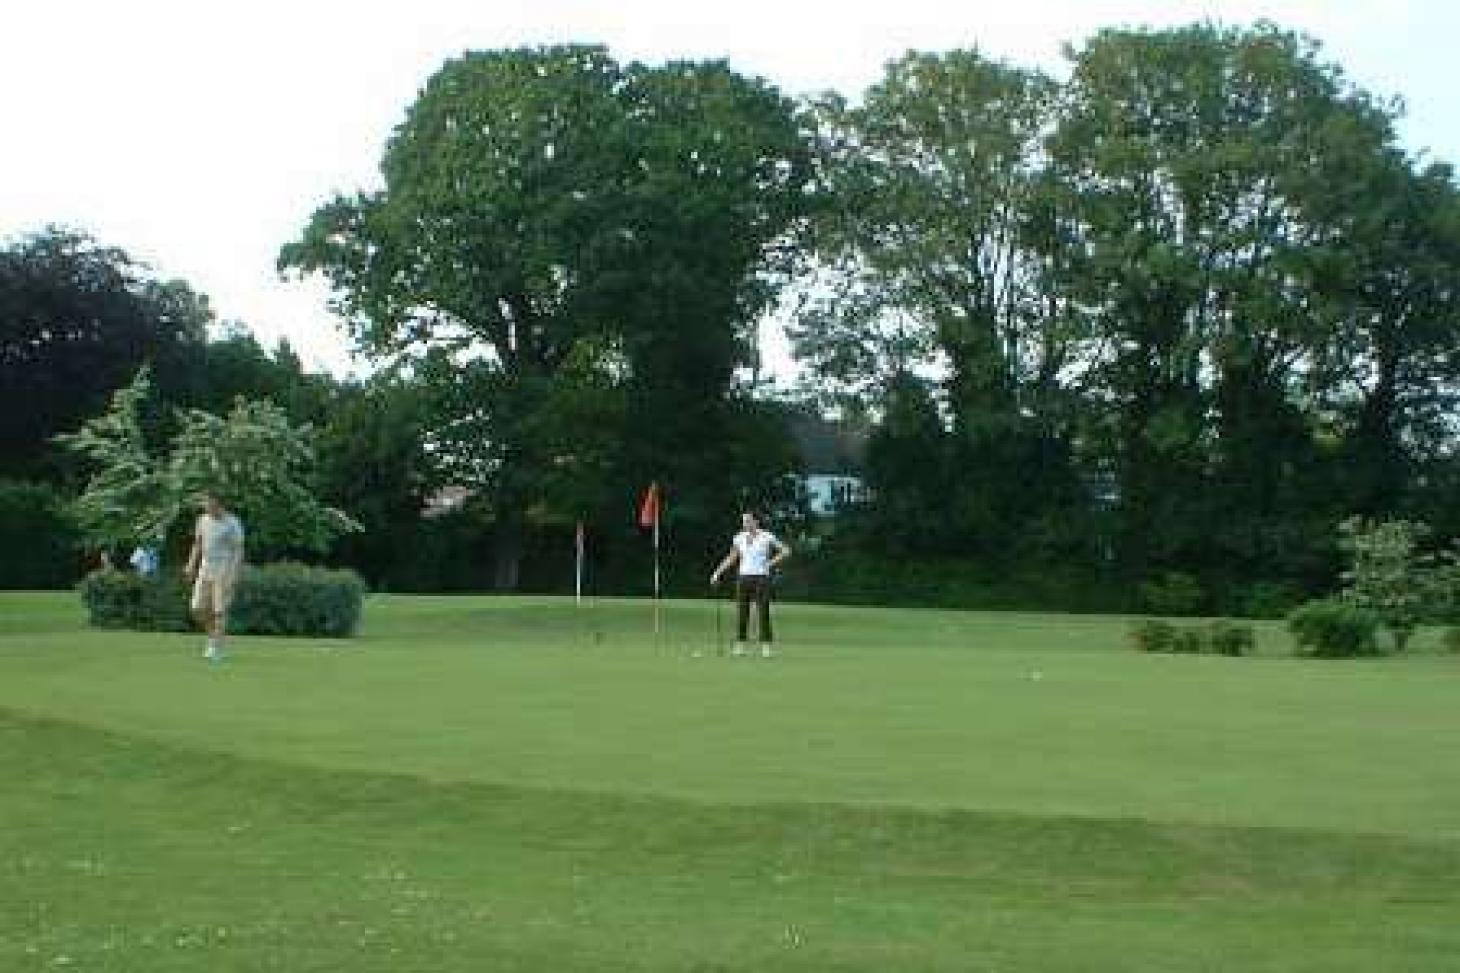 Palewell Common Pitch and Putt 9 hole golf course